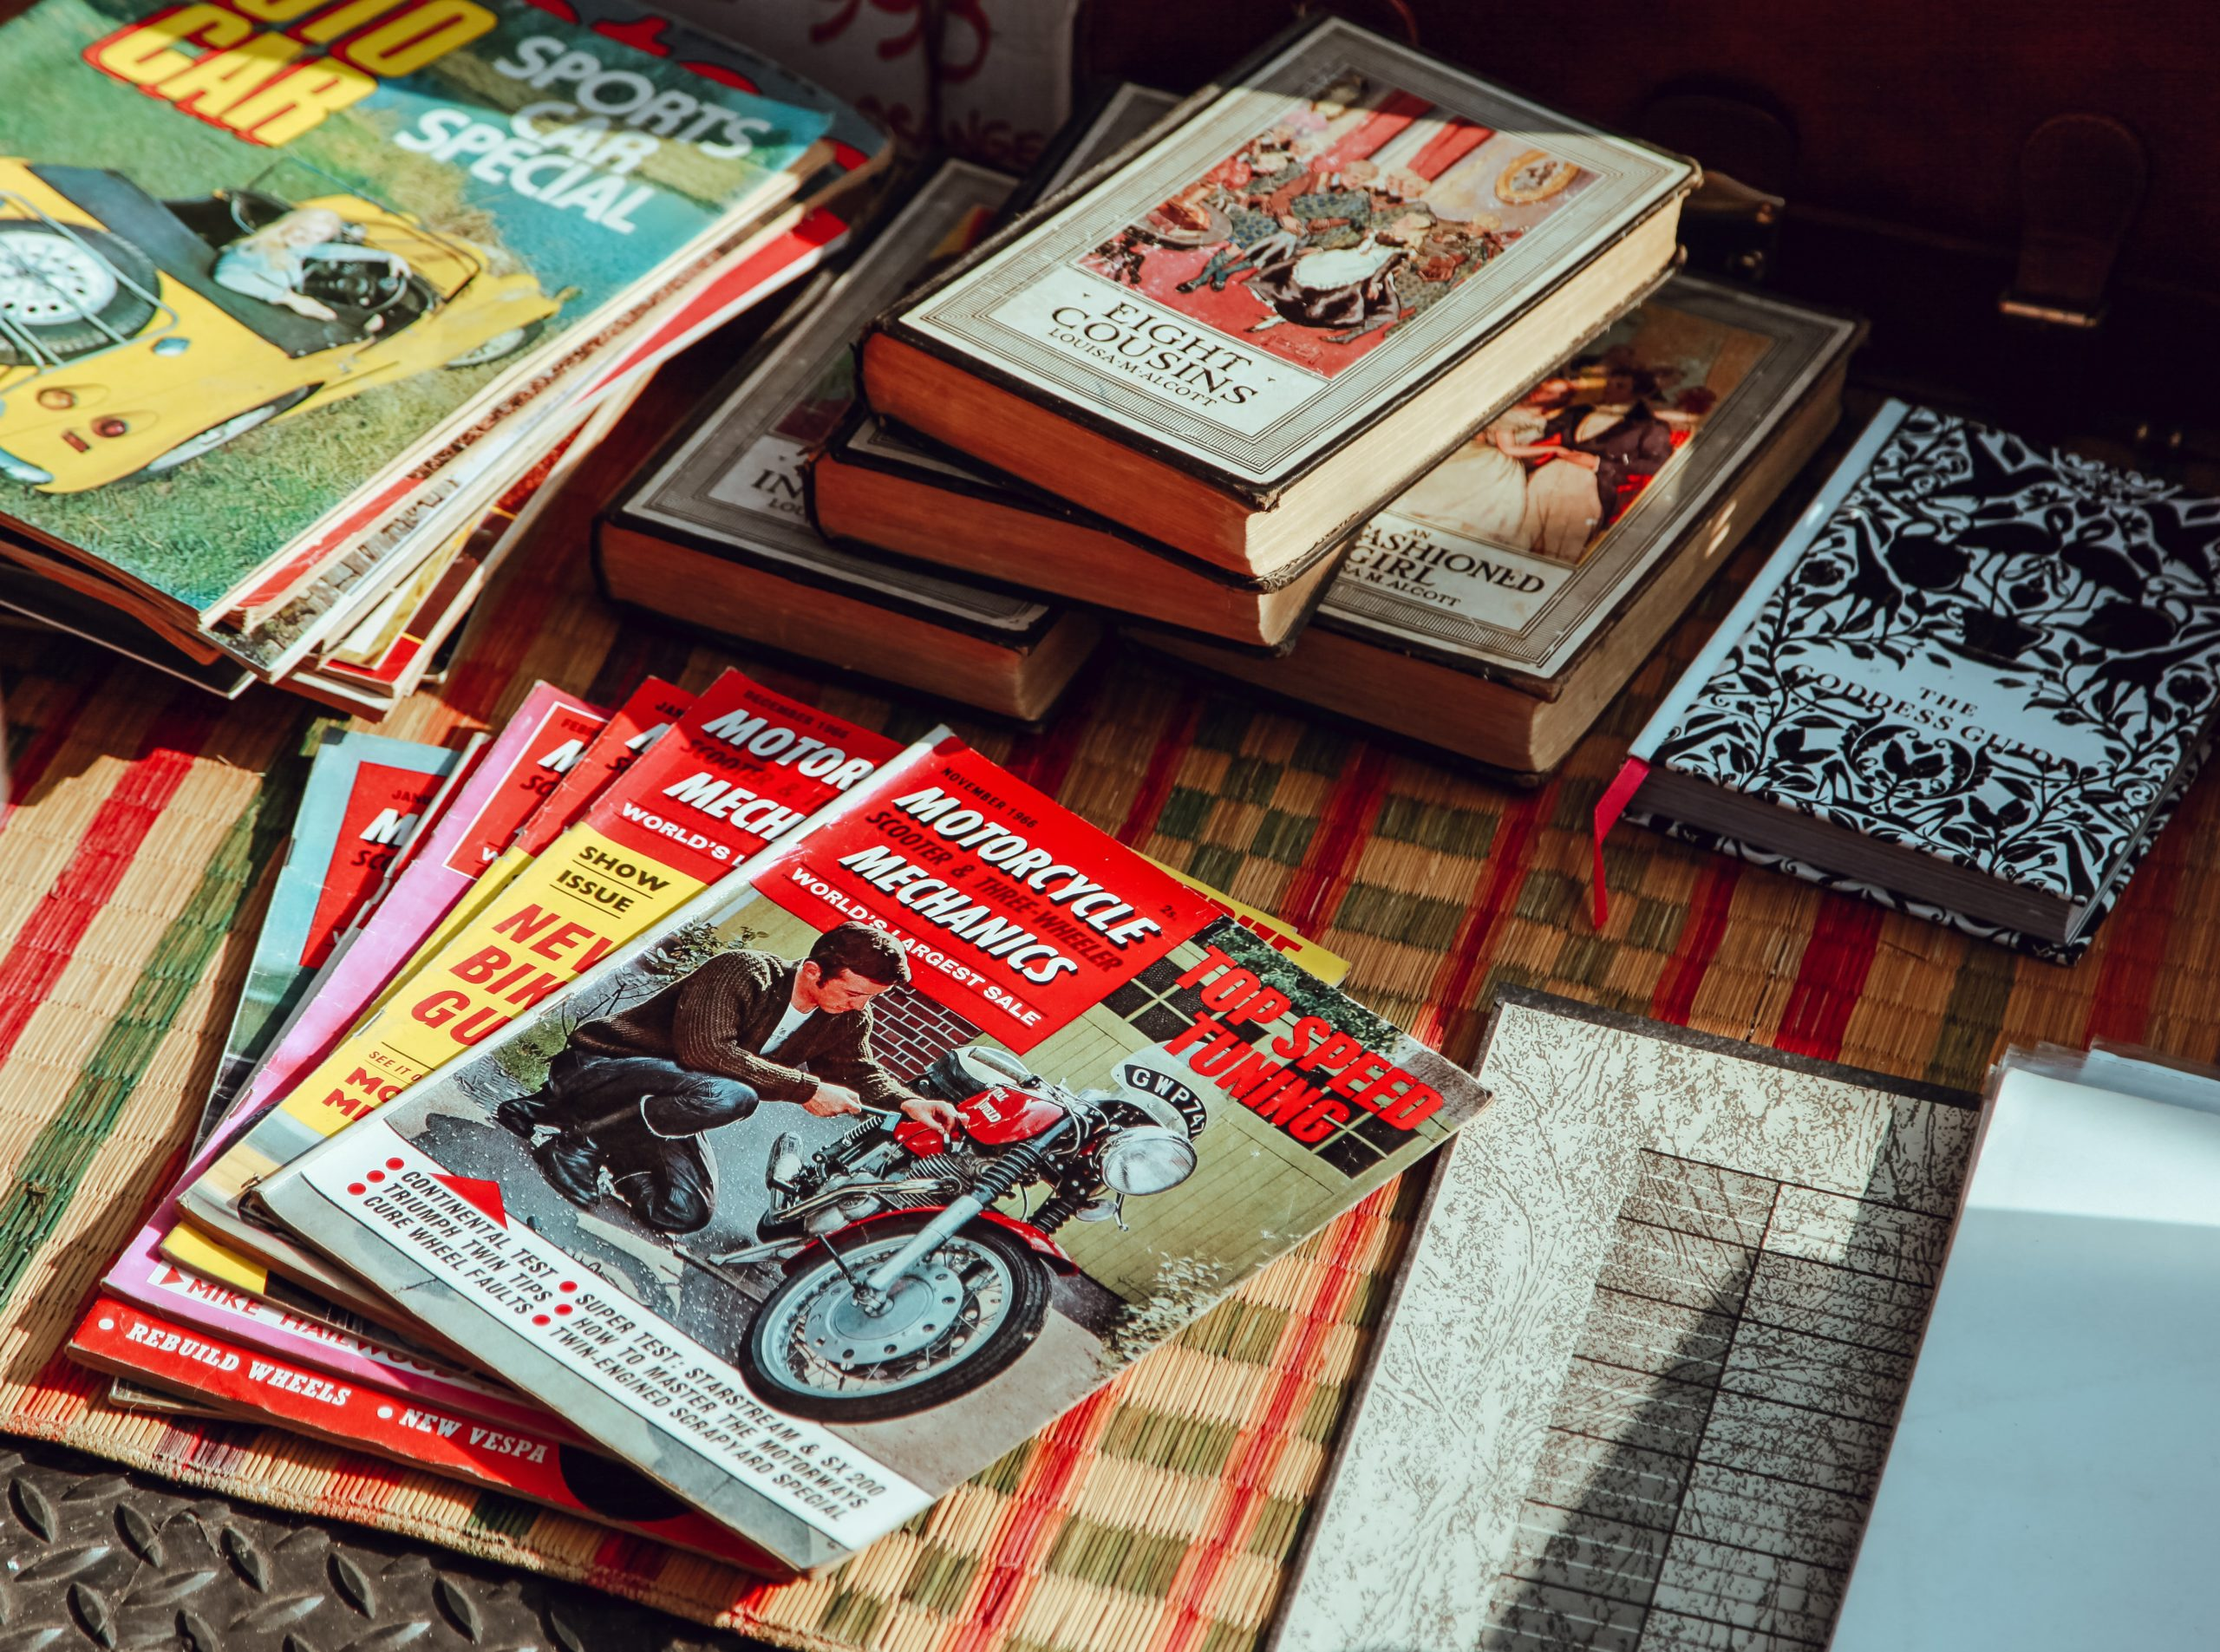 Assorted comic books and graphic novels on a table.